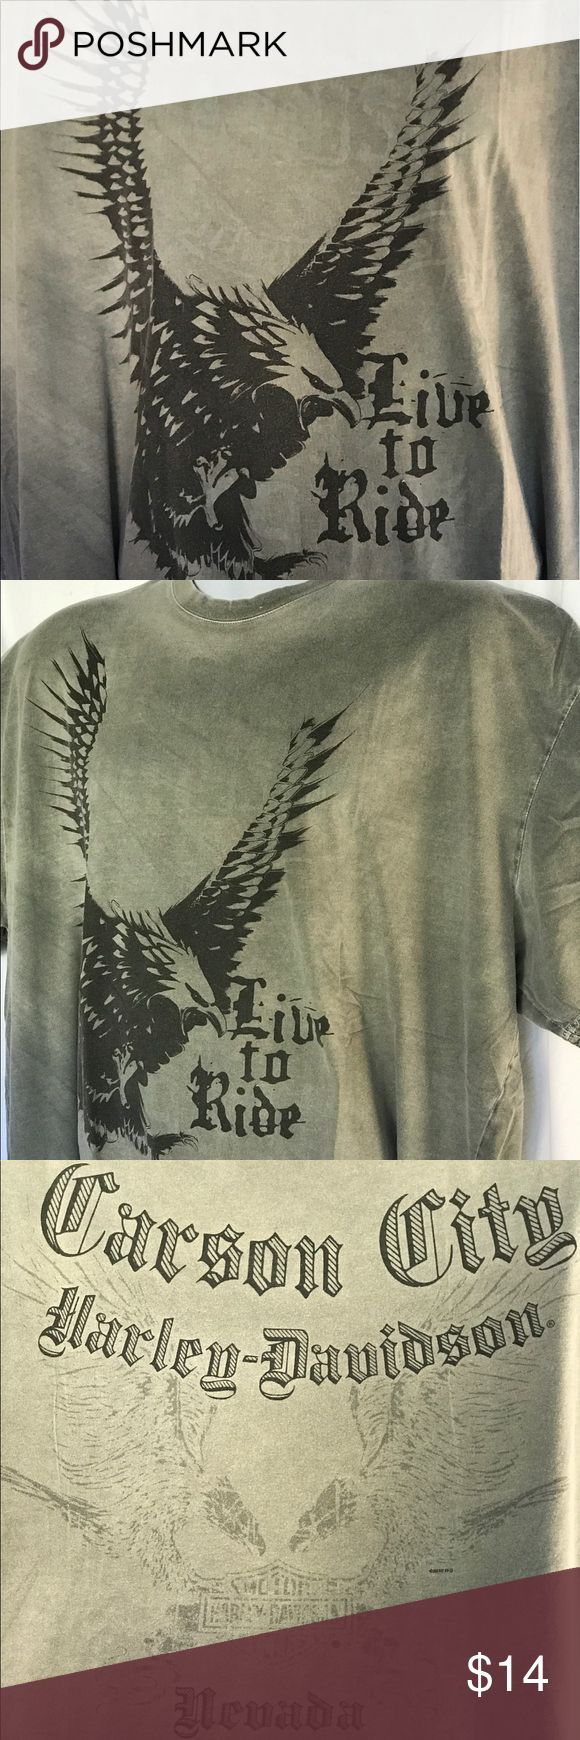 Eagle Live to Ride HARLEY-DAVIDSON Carson City Men's Eagle Live to Ride HARLEY-DAVIDSON Carson City, Nevada T-shirt 2XL Harley-Davidson Shirts Tees - Short Sleeve